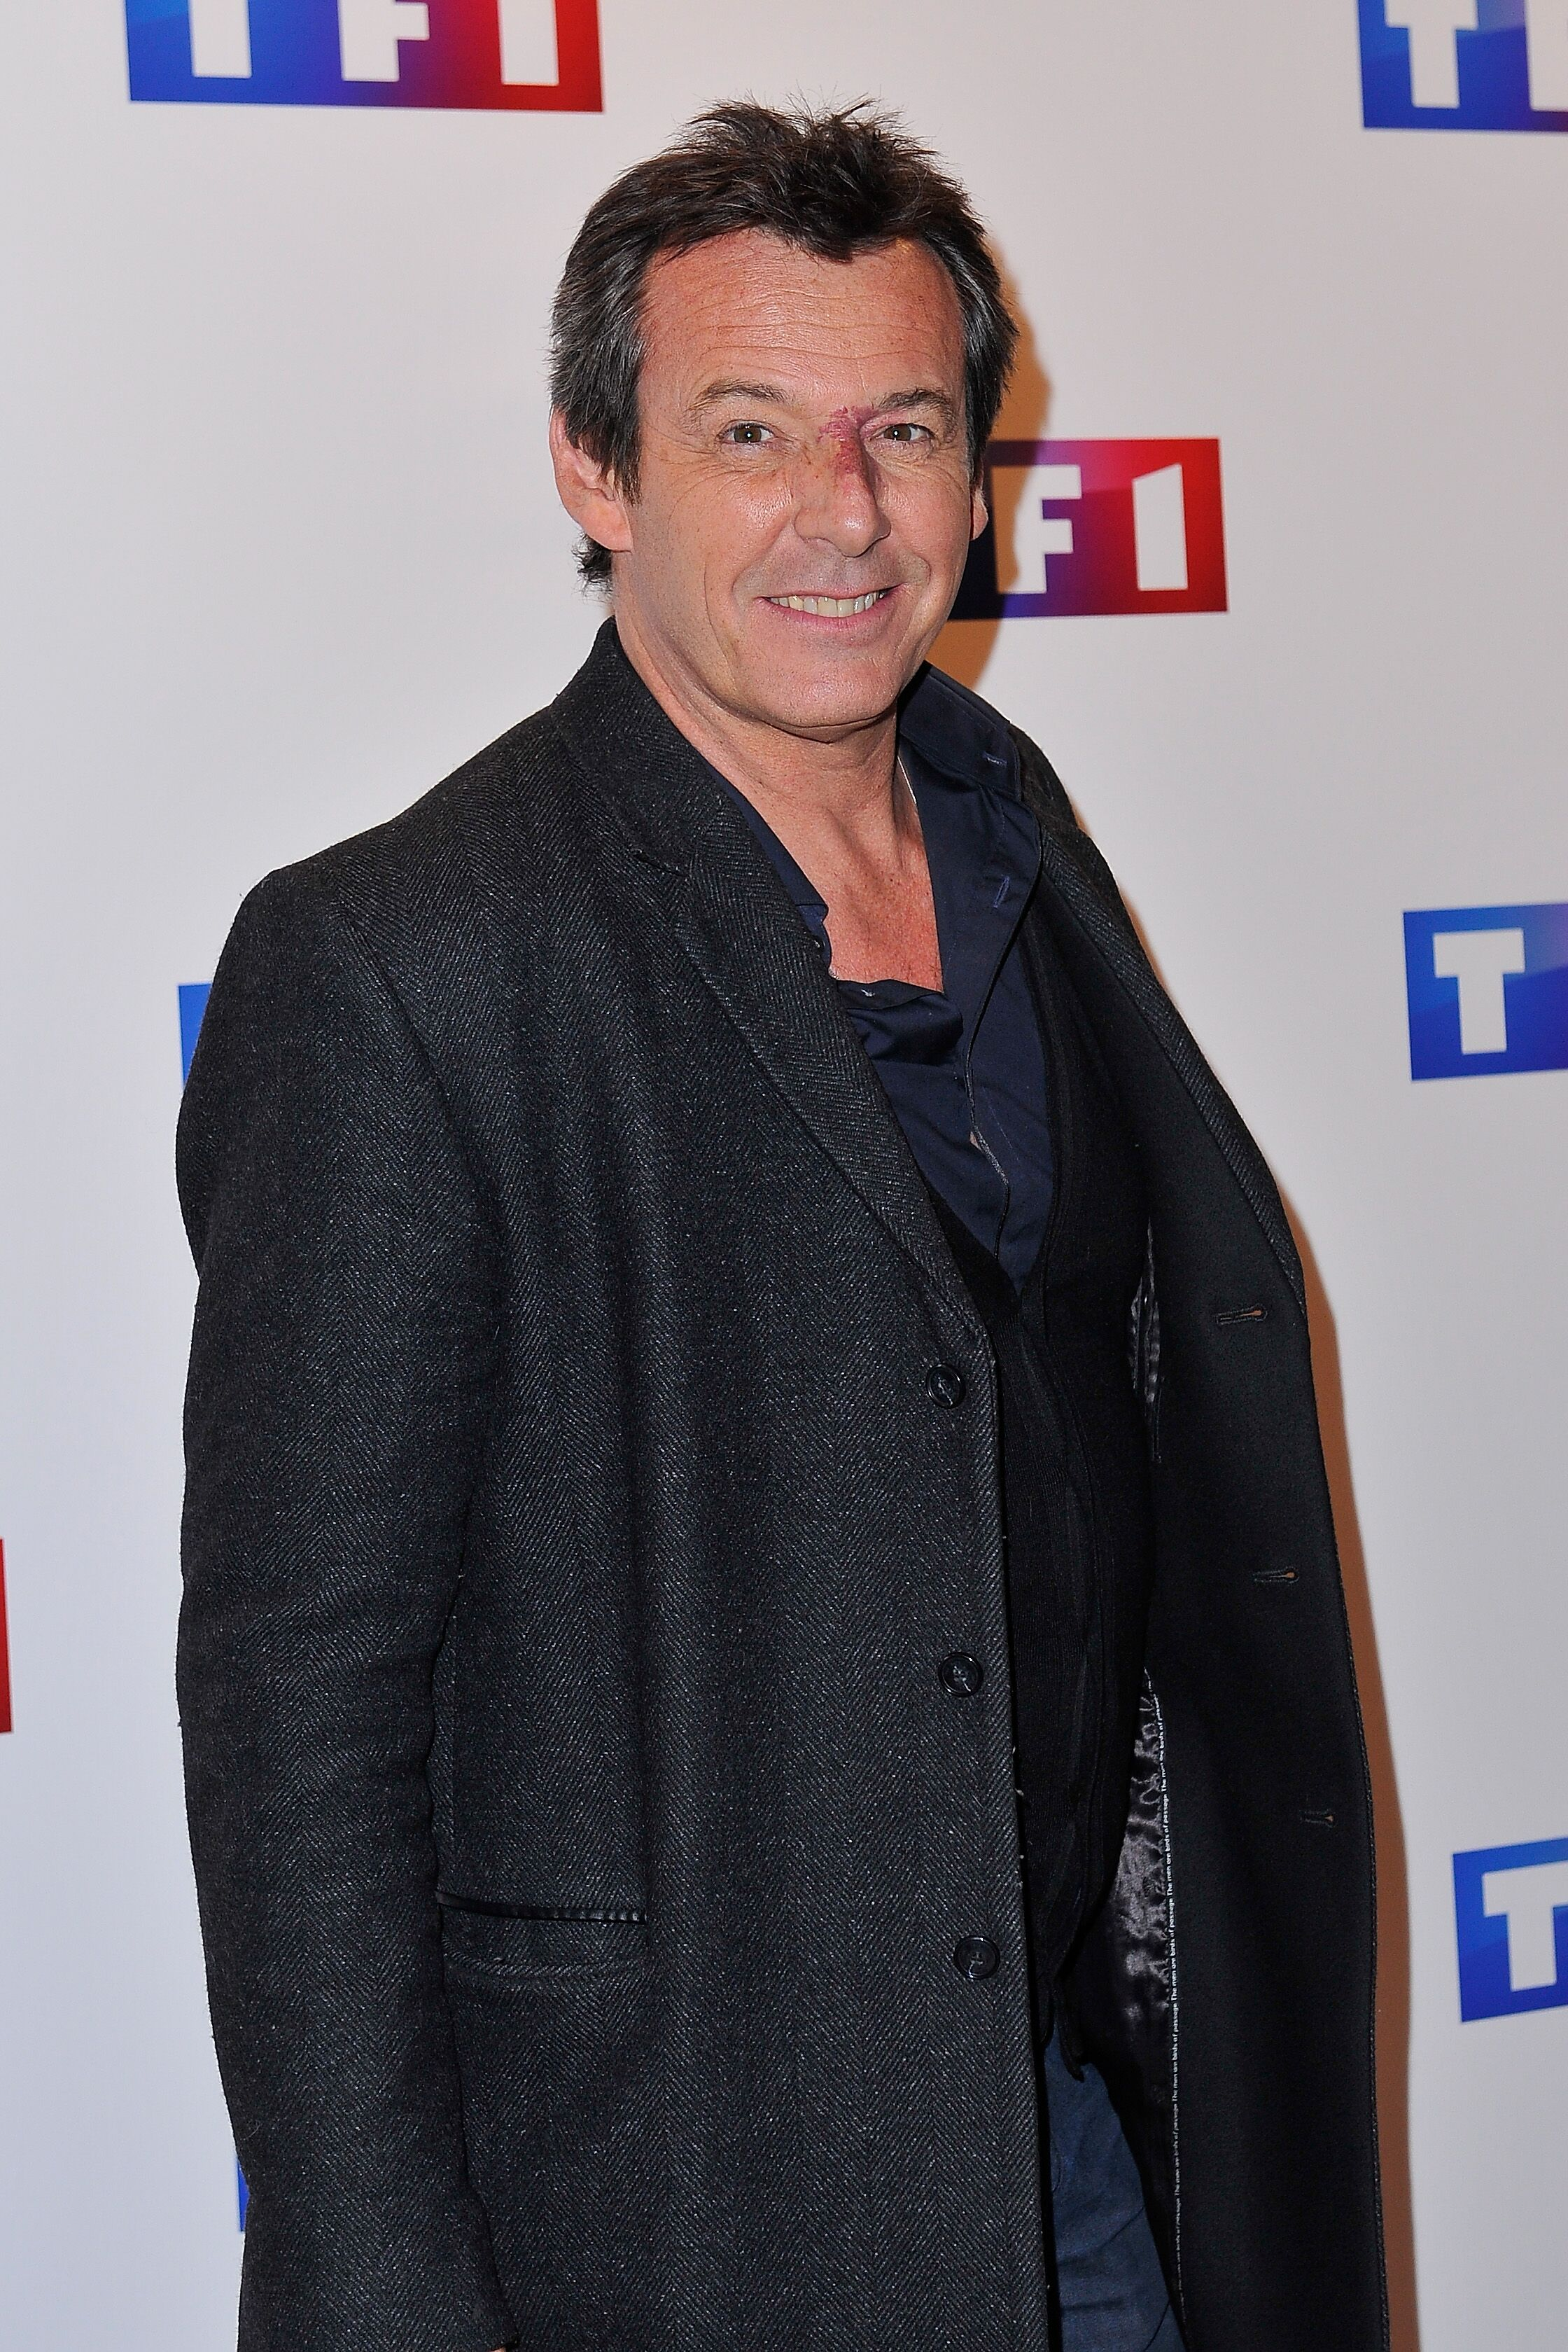 La photo de Jean-Luc Reichmann |Source: Getty Images / Global Ukraine